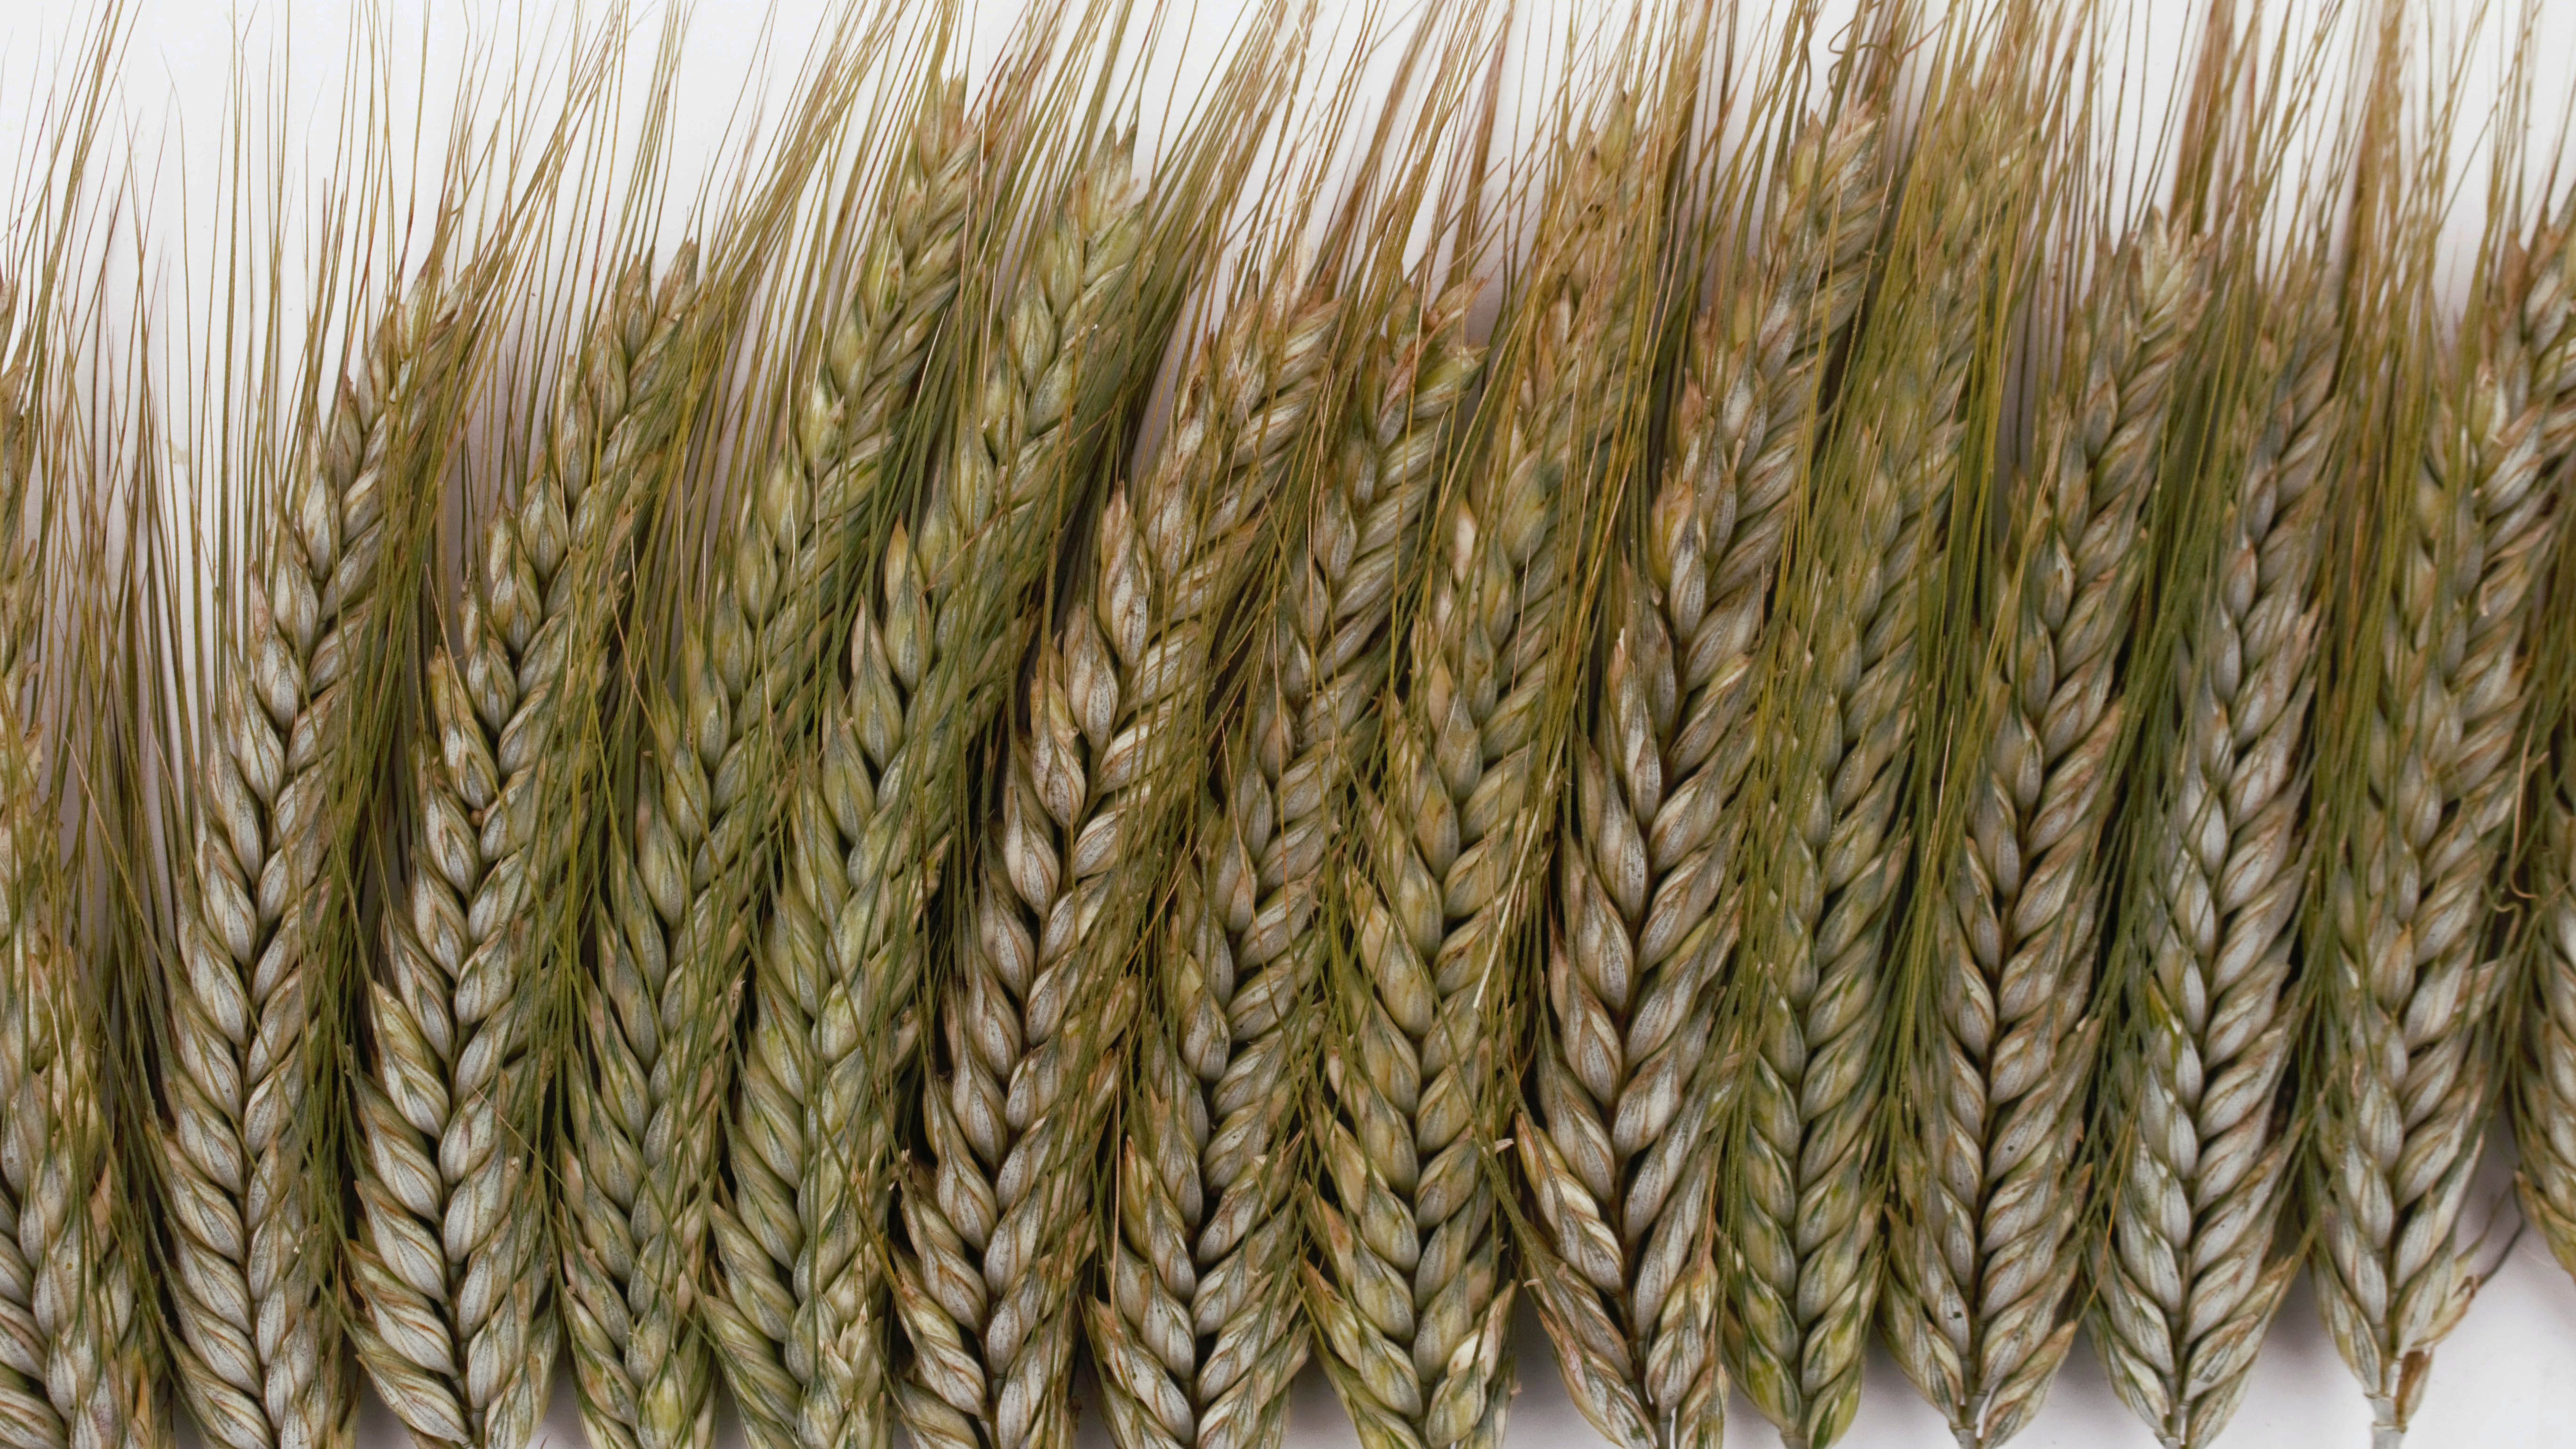 How Do Protein Levels Drive Black Sea Wheat Prices?